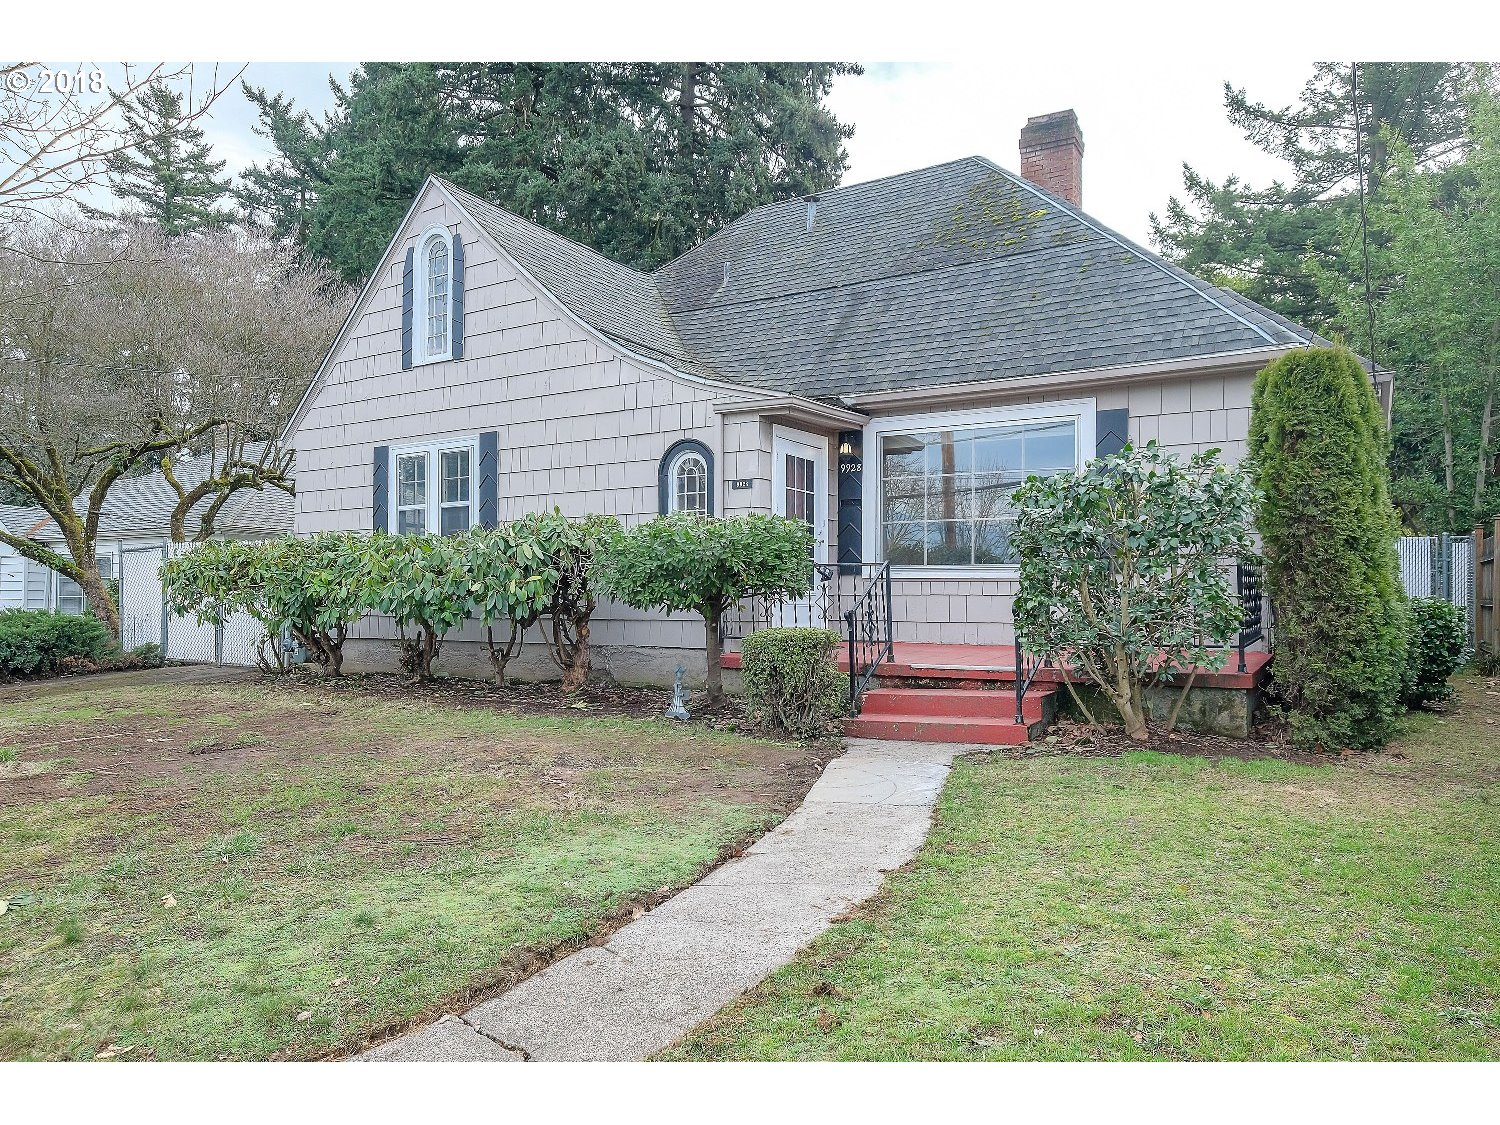 2448 sq. ft 4 bedrooms 1 bathrooms  House For Sale,Portland, OR